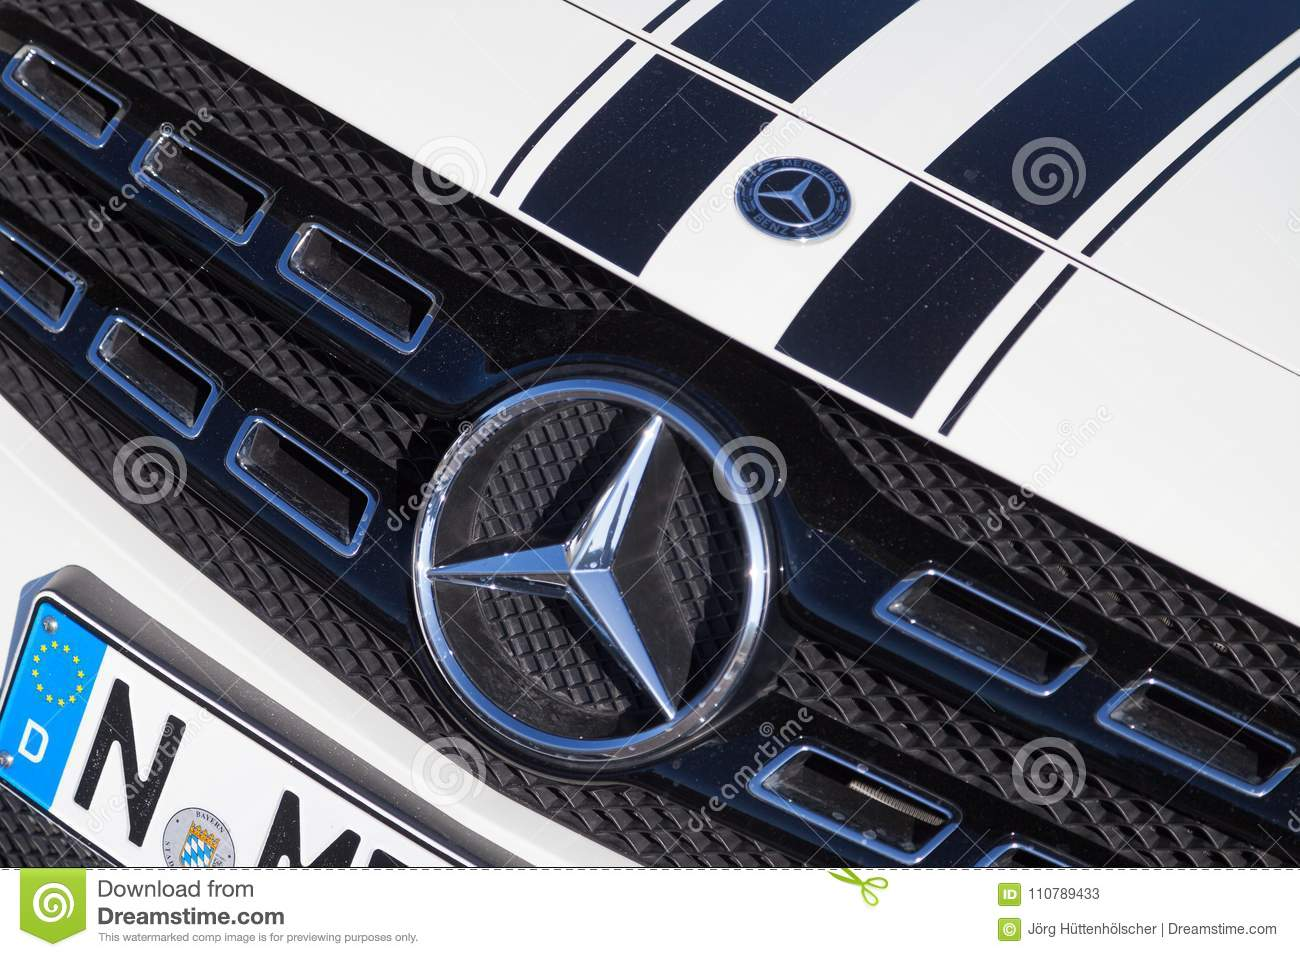 Mercedes Benz Symbol On A Car Editorial Stock Photo Image Of